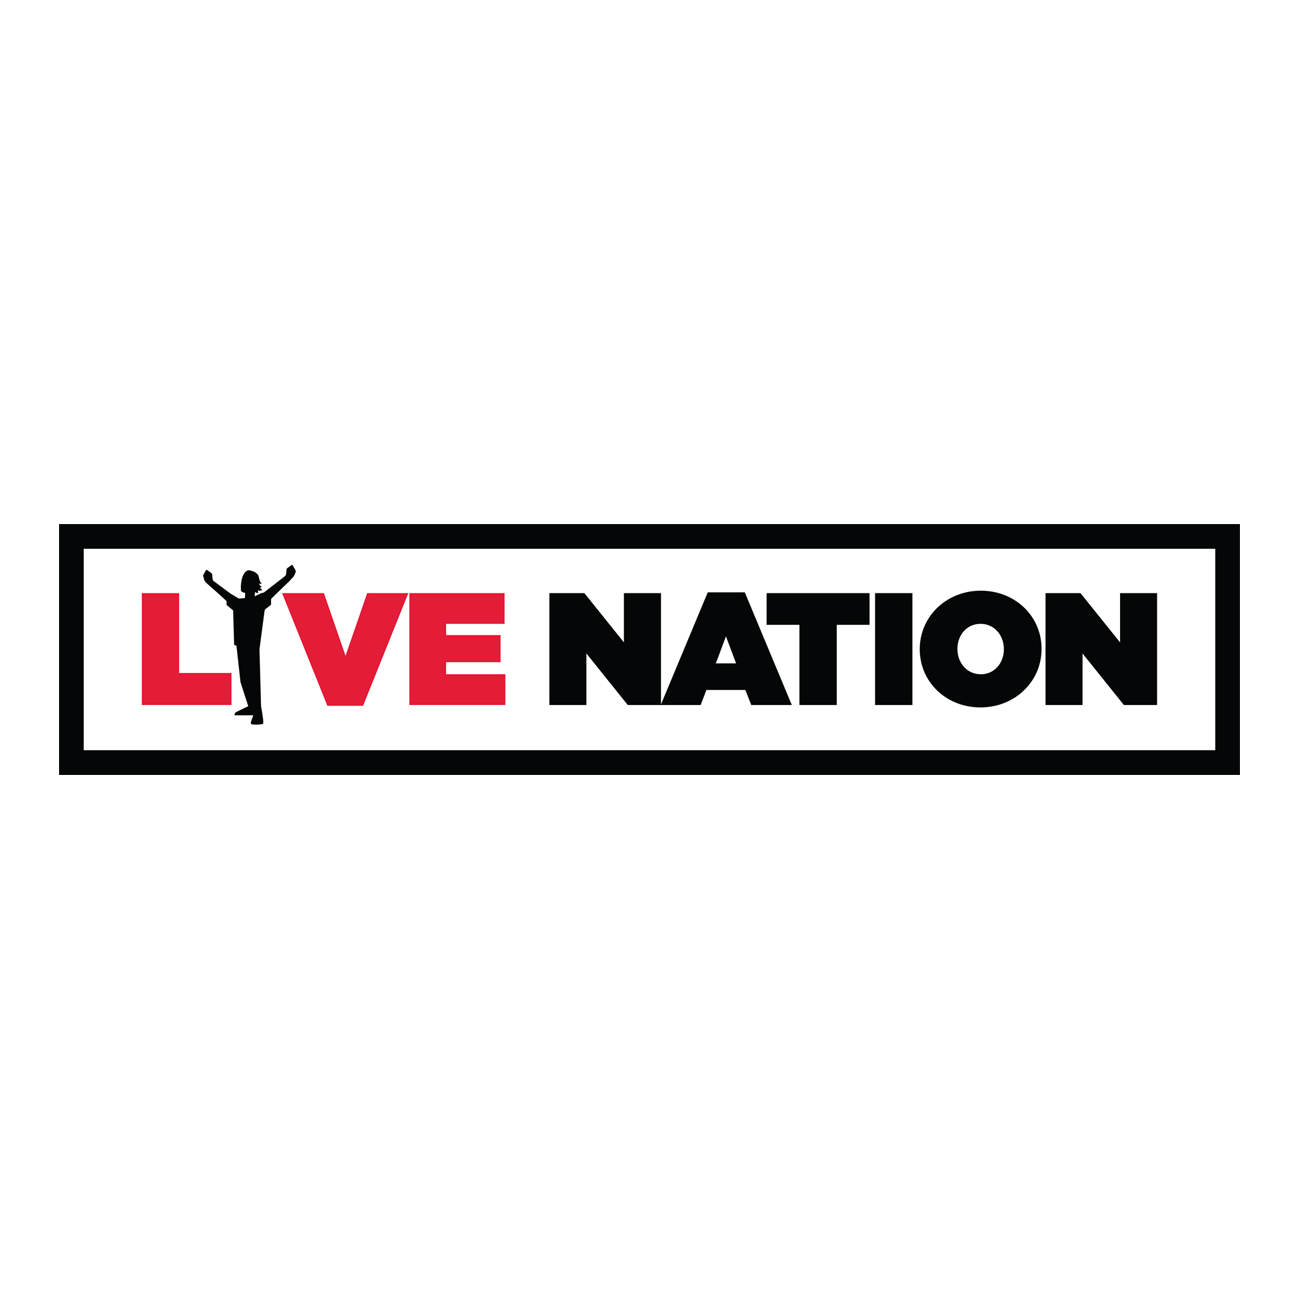 Live-nation_SQ.jpg